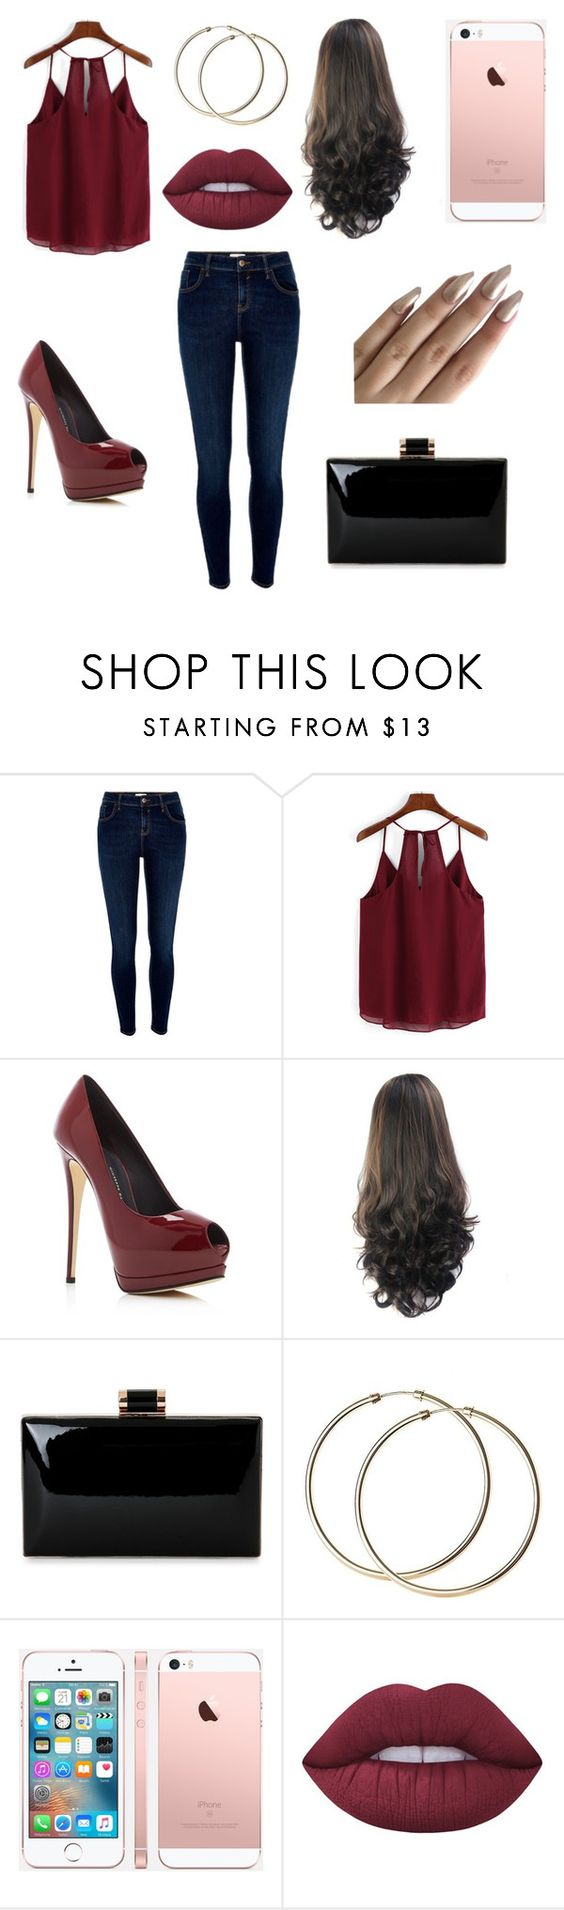 """""""Date Night"""" by rylanhoran ❤ liked on Polyvore featuring River Island, Giuseppe Zanotti and Lime Crime"""